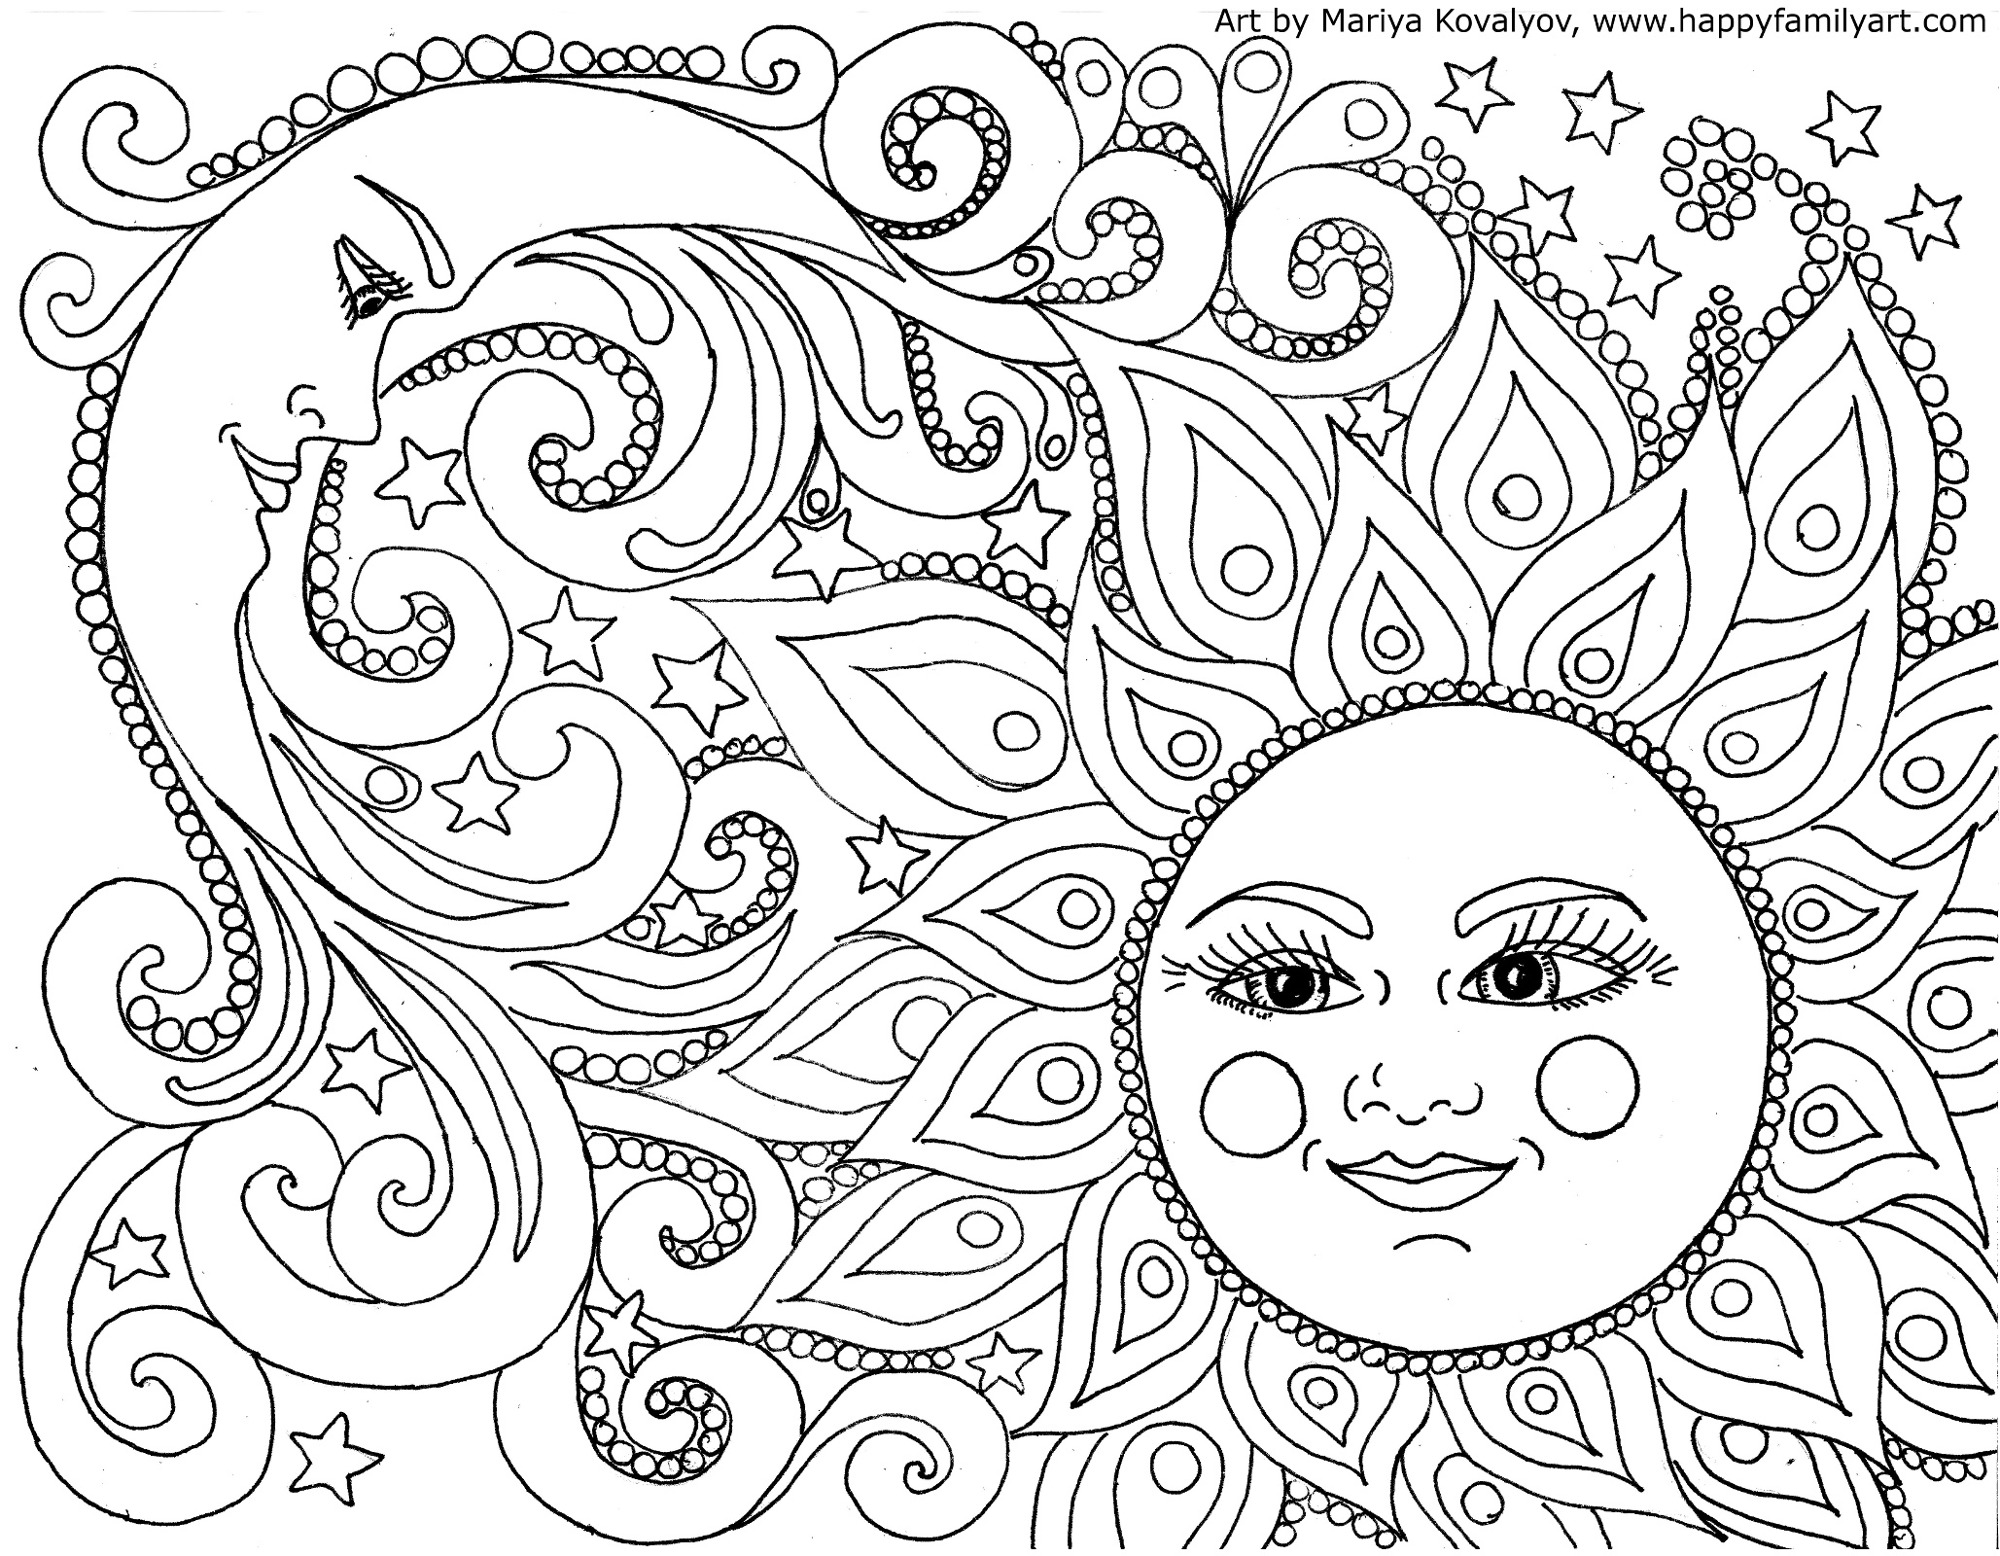 happy family art original and fun coloring pages - Coloring Pages